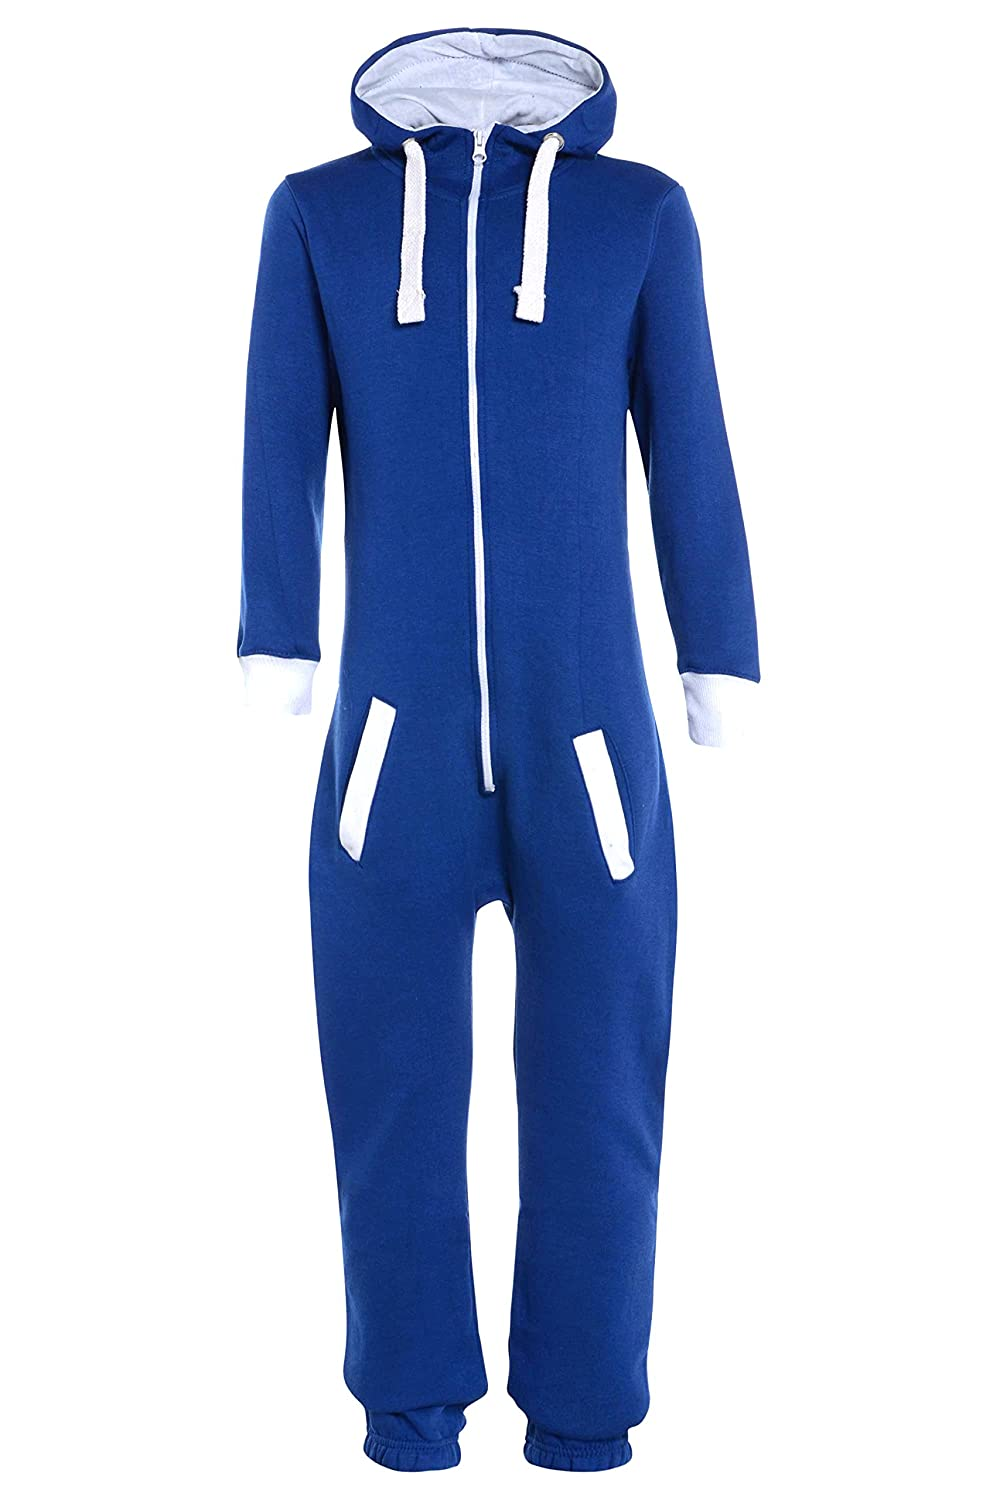 AEL Kids Plain Hooded Onesie/Childrens Jumpsuit (Girls Boys Onesies onesy Onsie)